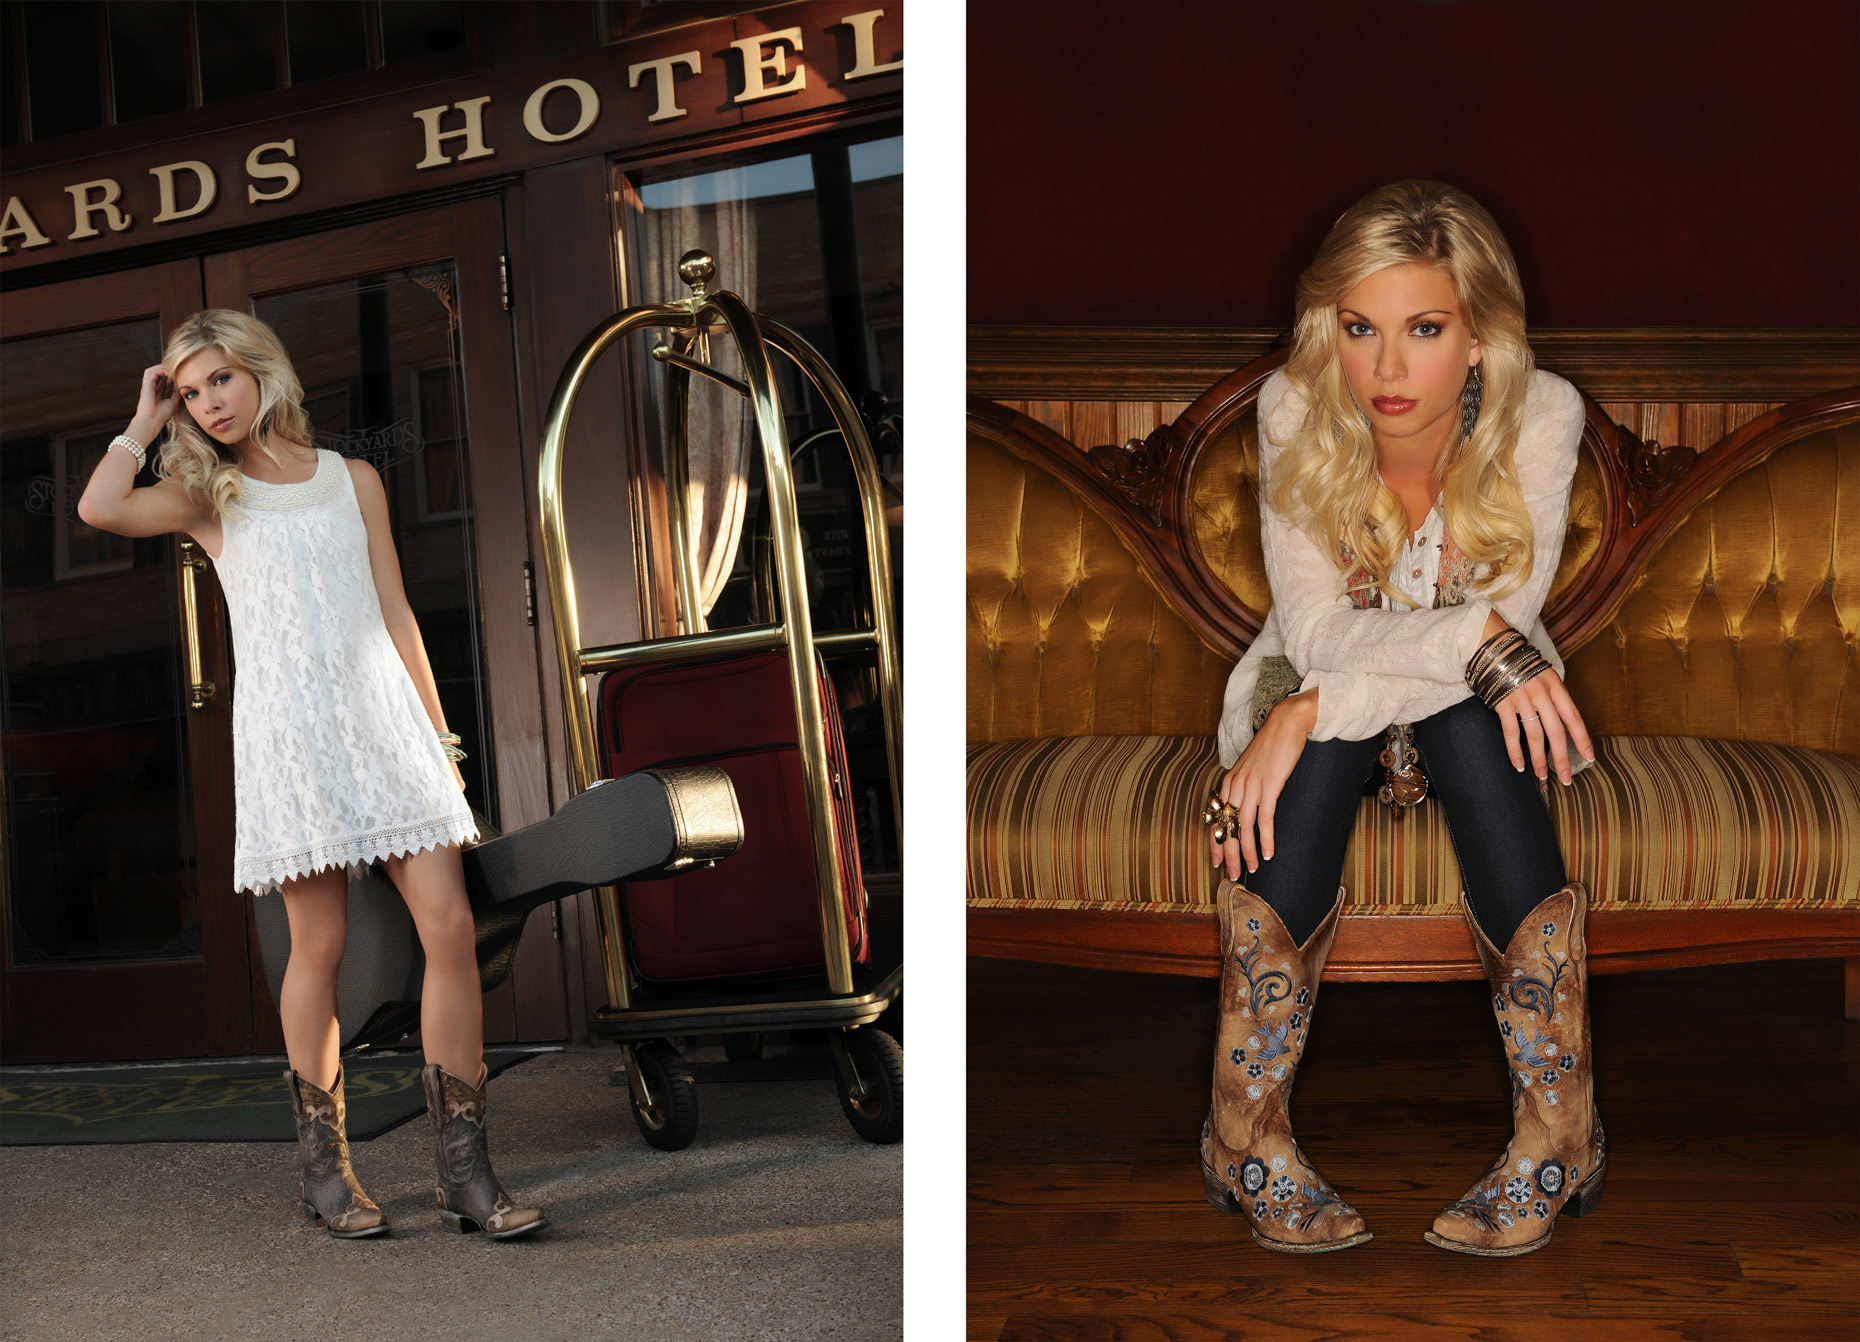 Fashion photography for Lane Boots by Dallas photographer Kevin Brown